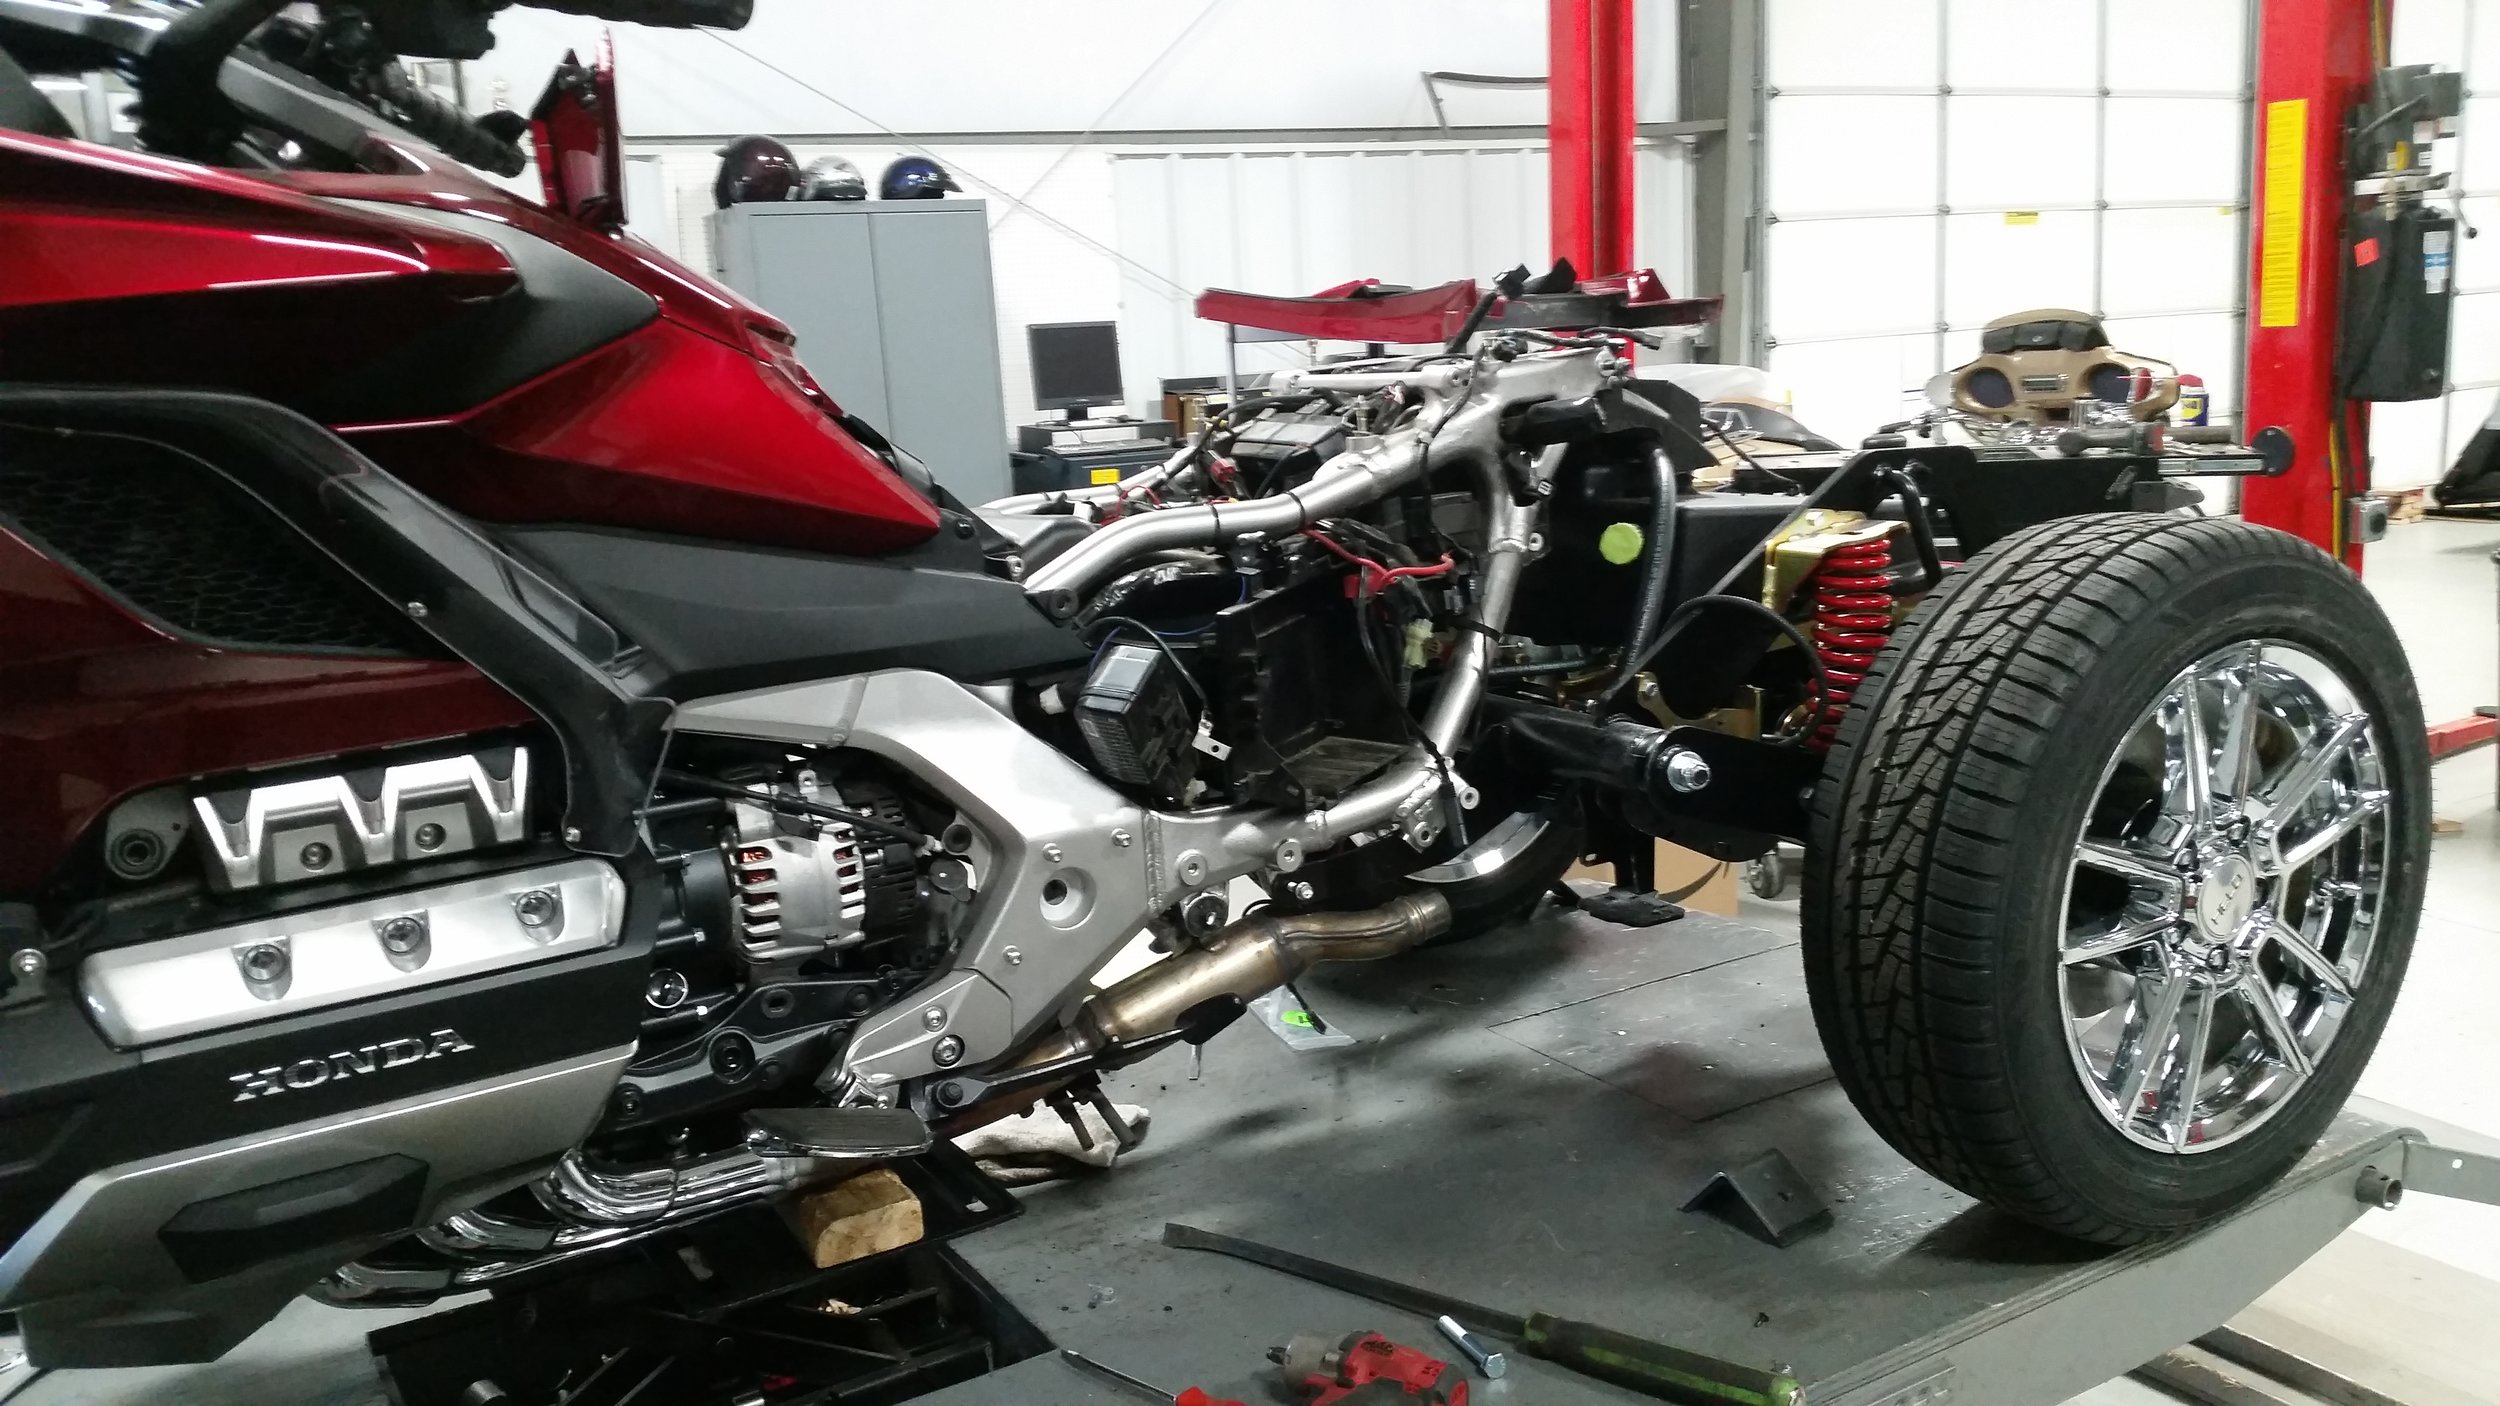 independent suspension trike kit installation on a 2018 goldwing 1800